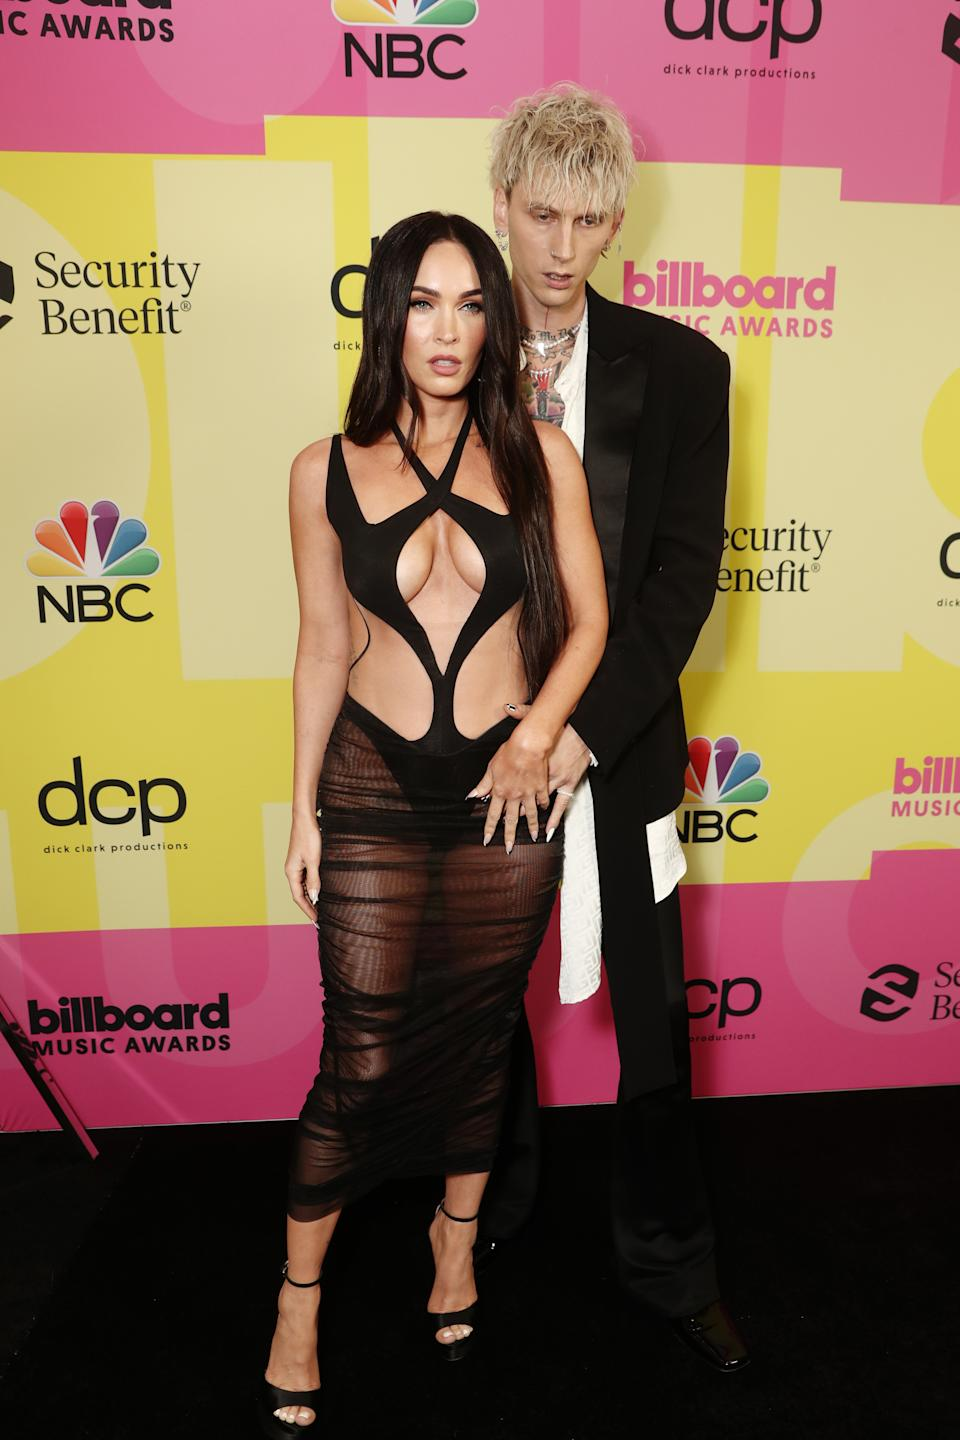 LOS ANGELES, CA - MAY 23: 2021 BILLBOARD MUSIC AWARDS -- Pictured: (l-r) Megan Fox and Machine Gun Kelly arrive to the 2021 Billboard Music Awards held at the Microsoft Theater on May 23, 2021 in Los Angeles, California. -- (Photo by Todd Williamson/NBC/NBCU Photo Bank via Getty Images)